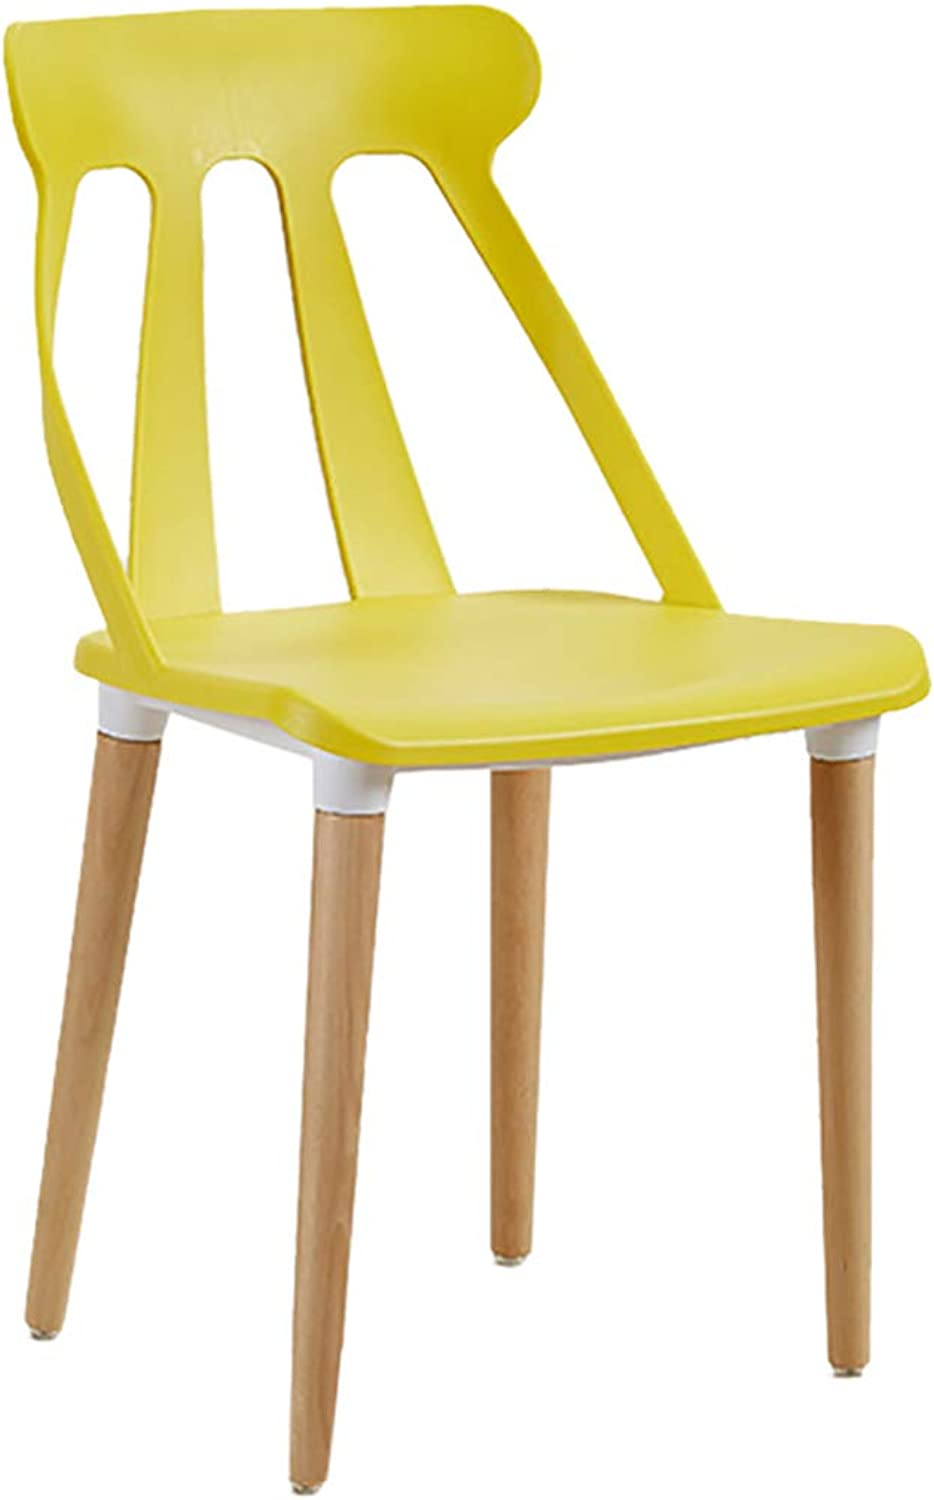 Nordic Solid Wood Dining Chair, Lounge Chair, Ergonomic Design, for Kitchen   Breakfast   Counter   Conservatory   Café   Pub